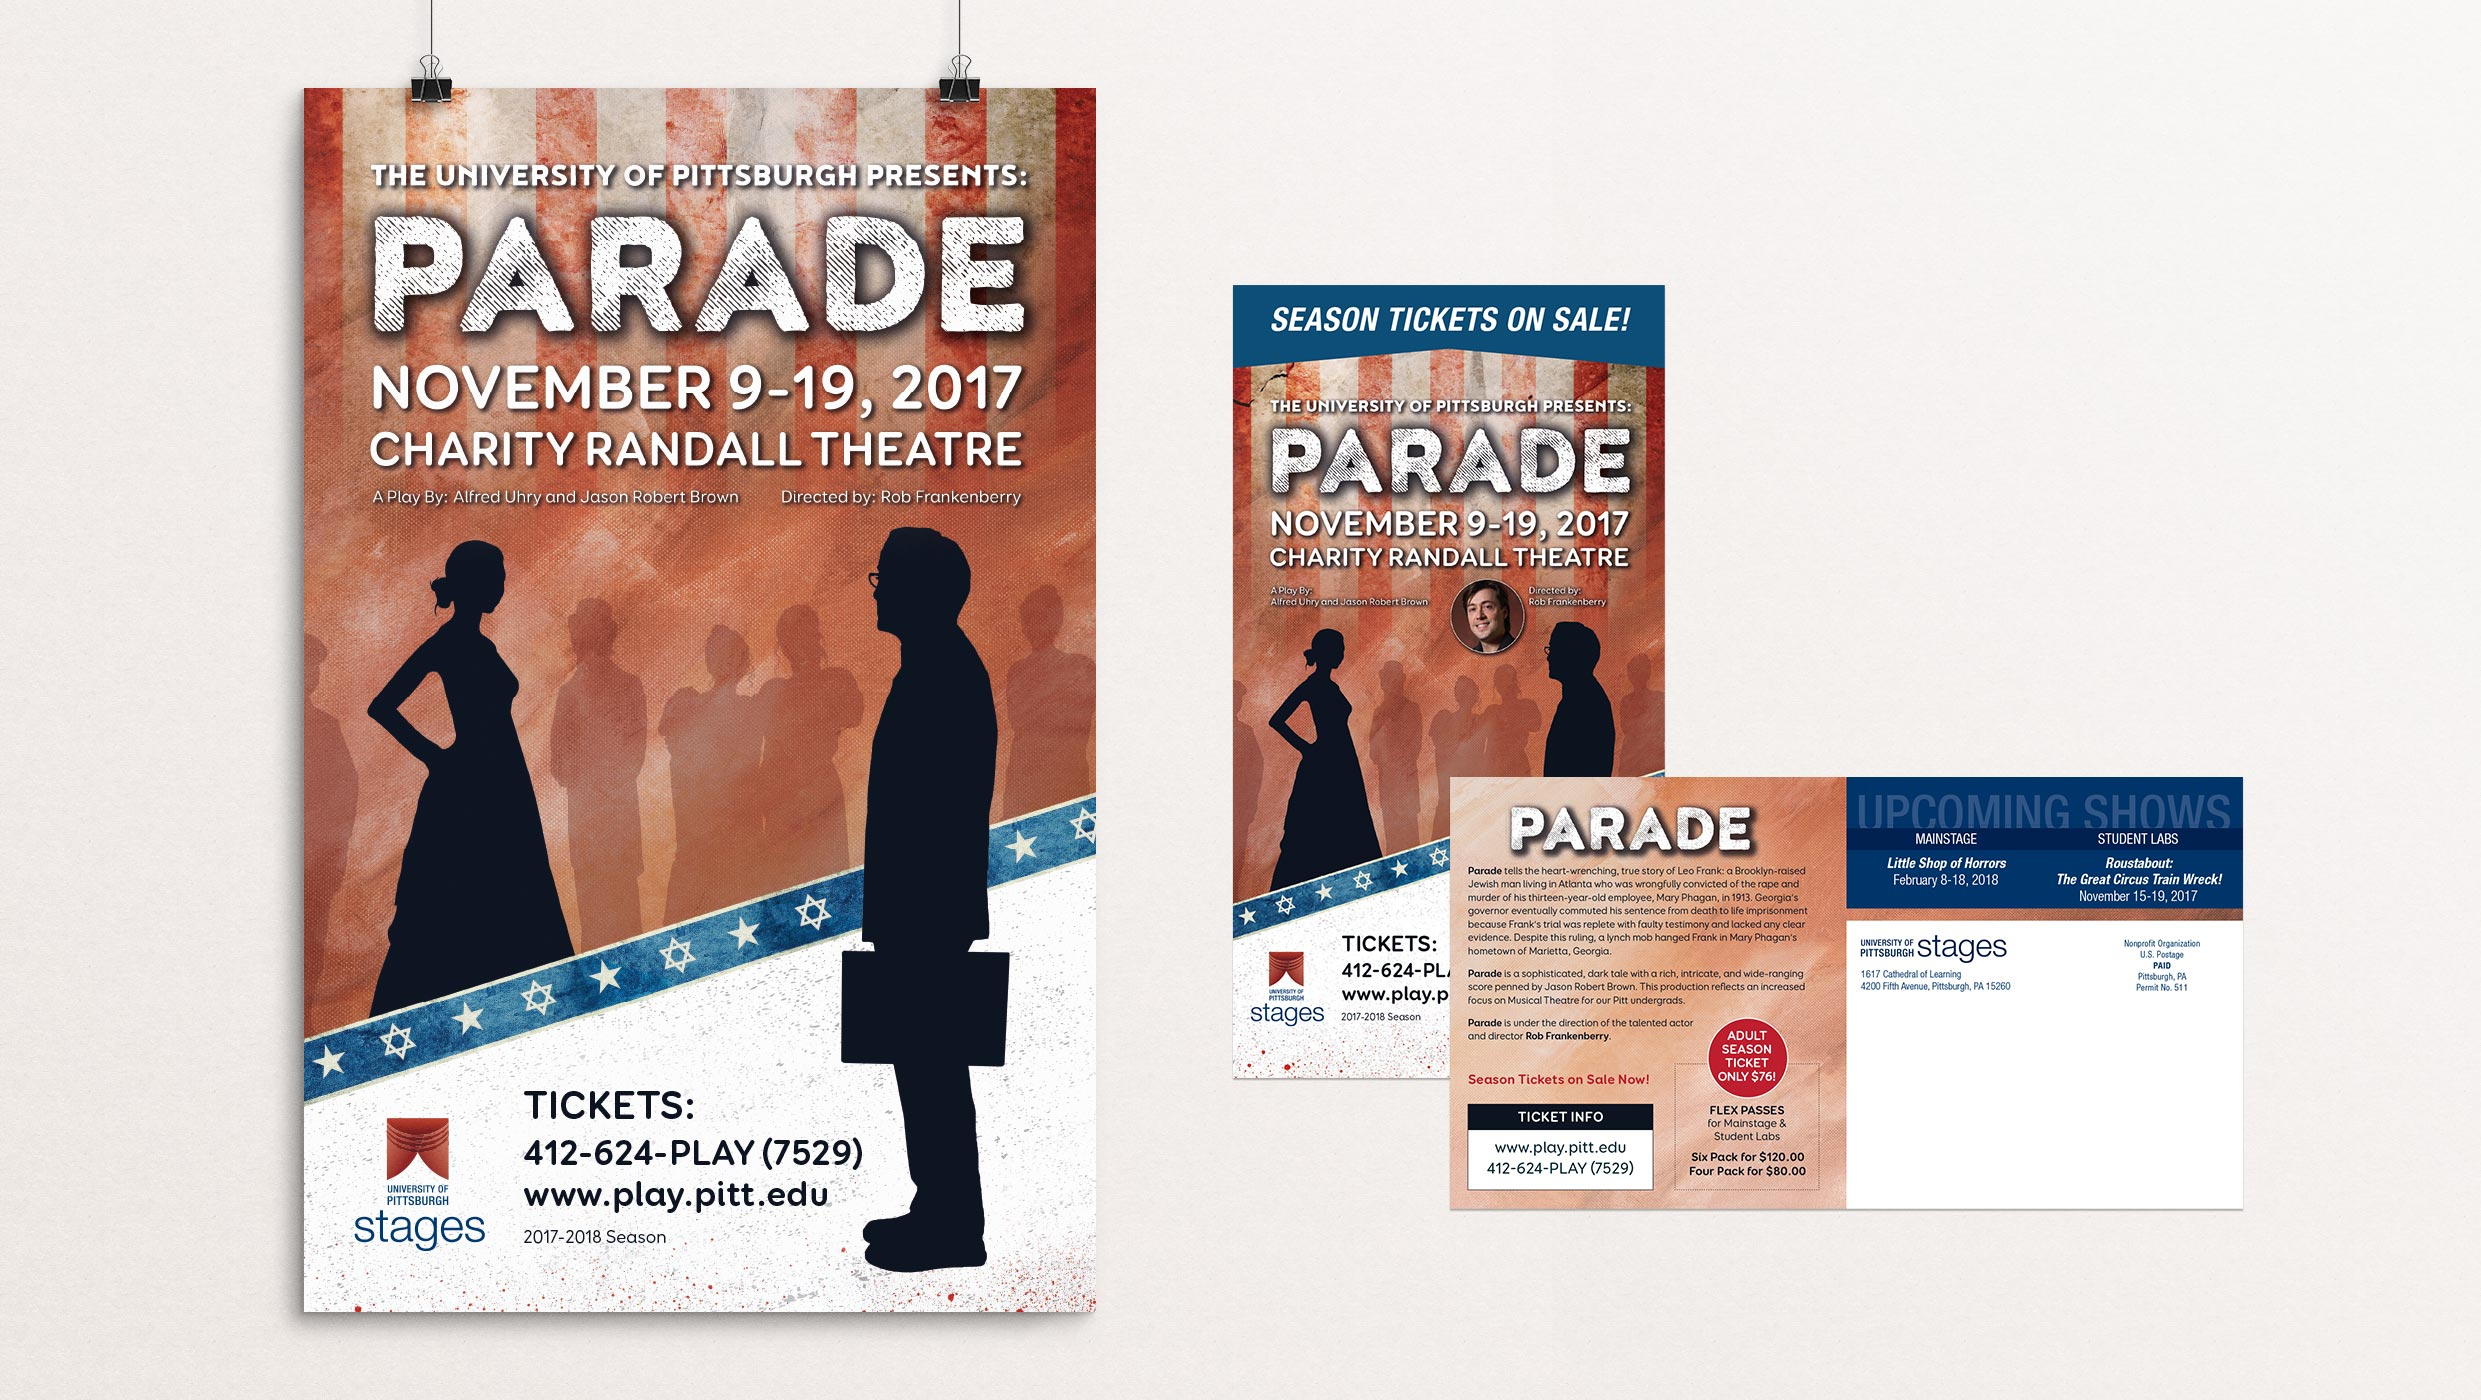 Parade poster designed by Tara Hoover